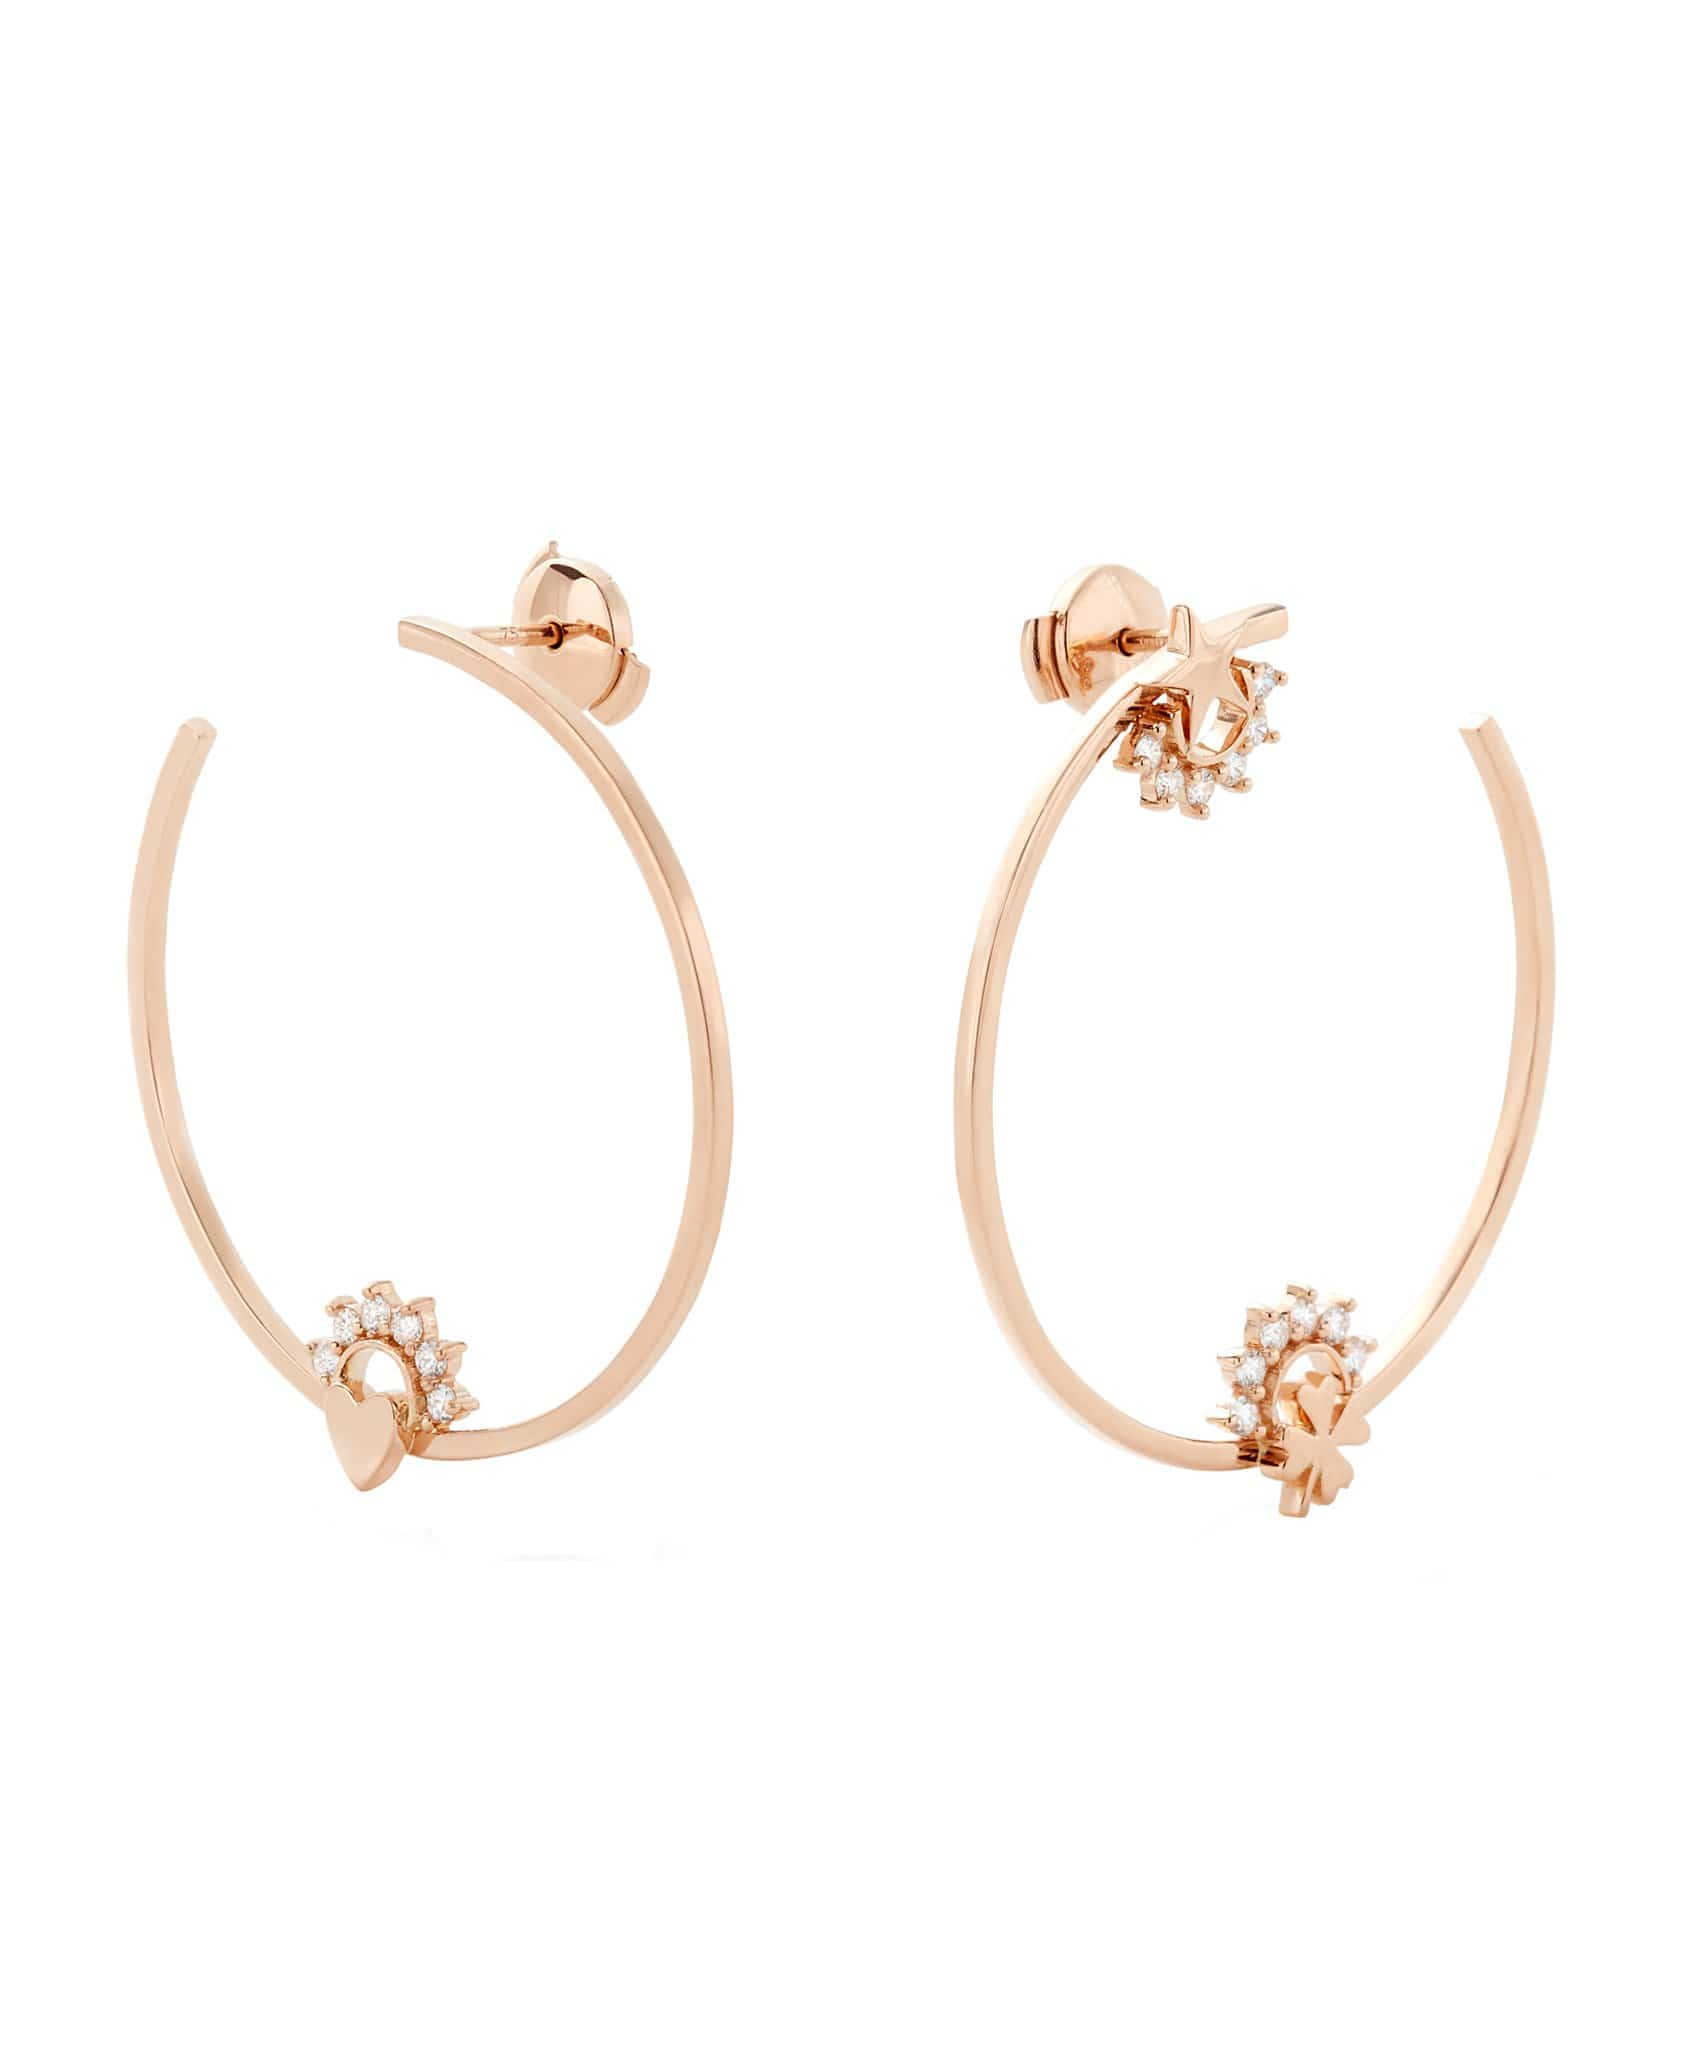 Motifs Hoops: Discover Luxury Fine Jewelry | Nouvel Heritage